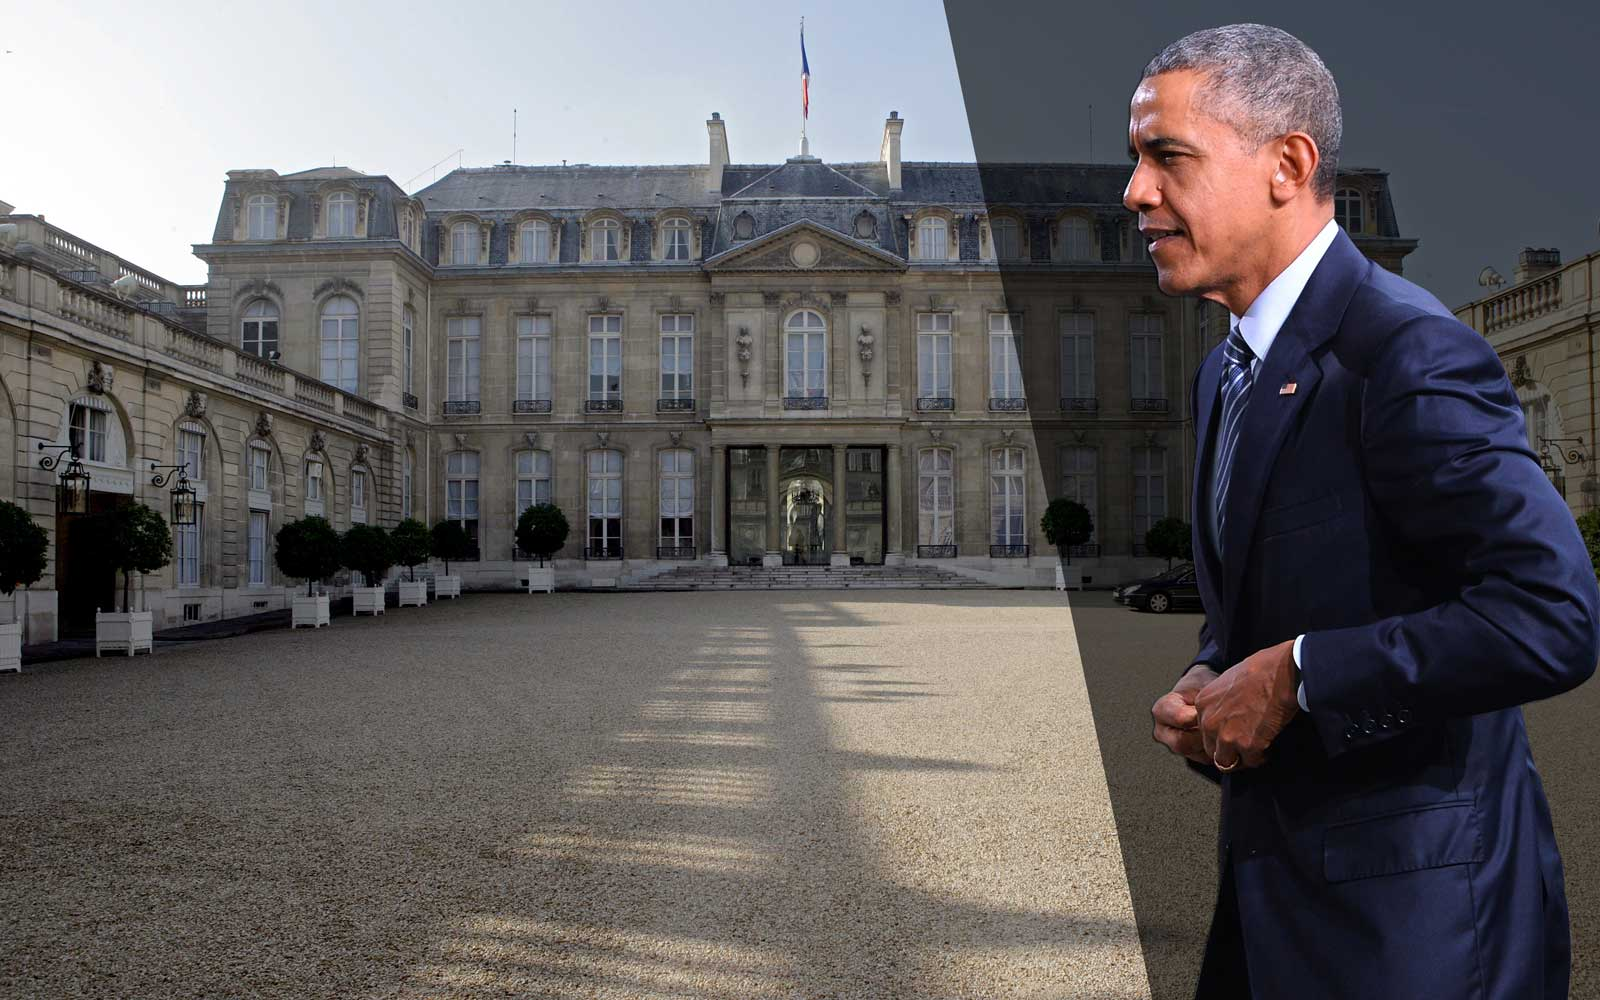 Barack Obama in front of Elysee palace